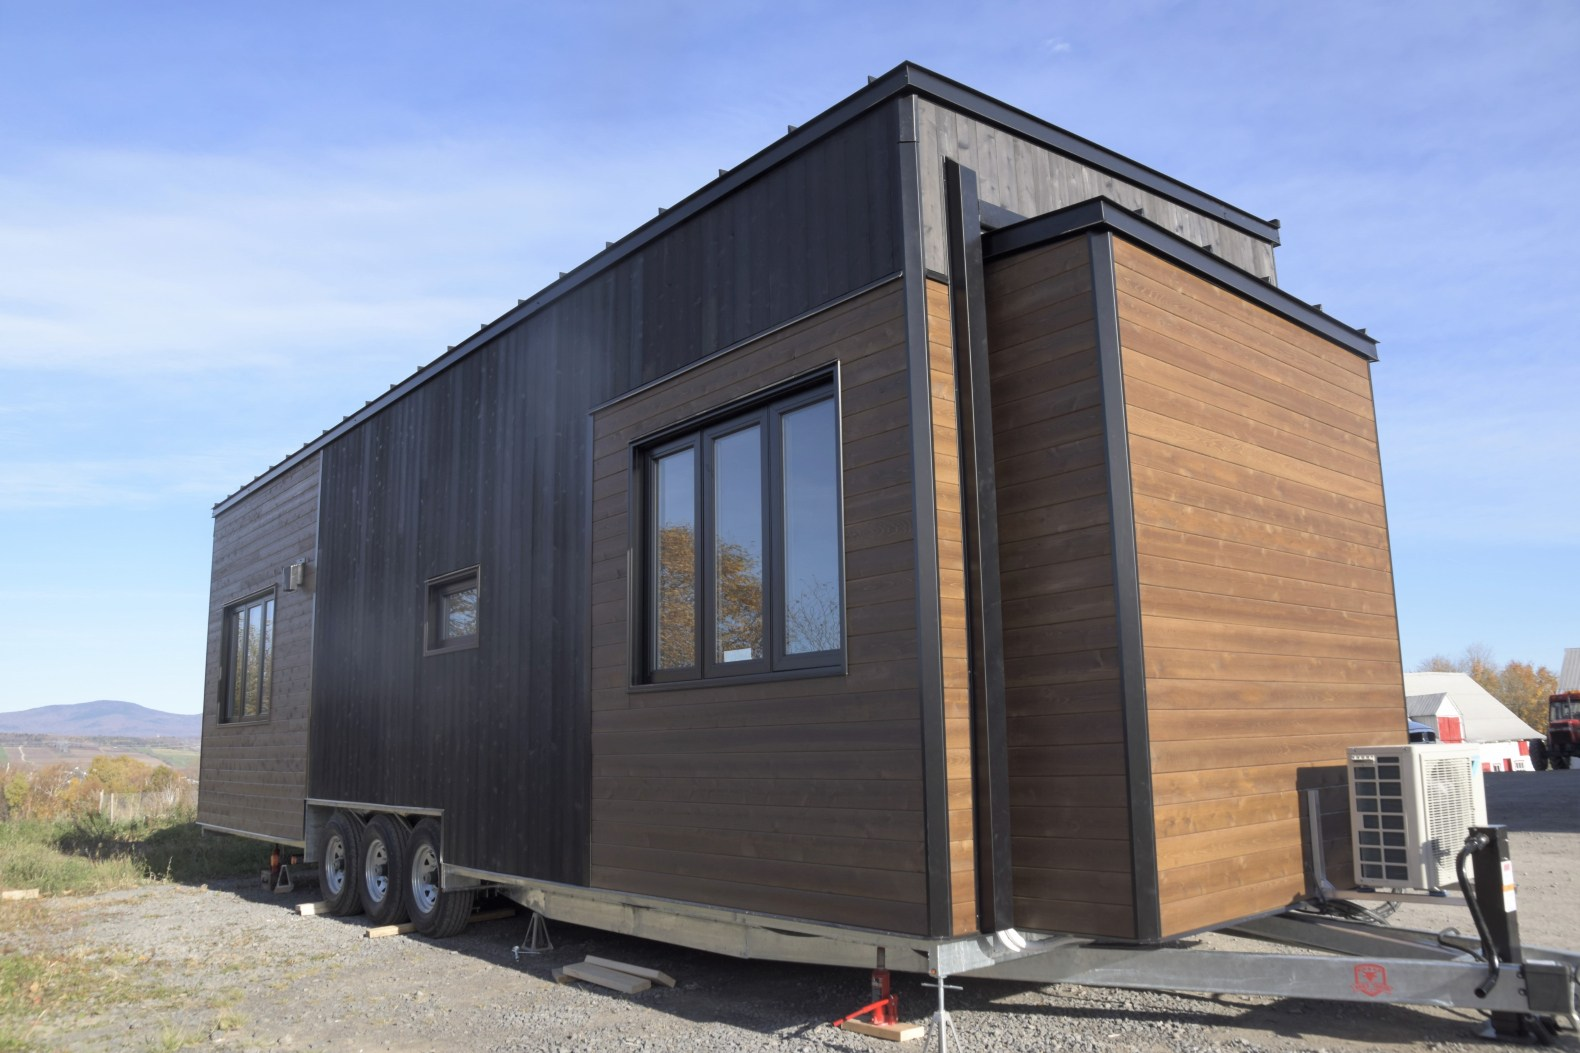 Gorgeous cedar-clad tiny home designed to withstand Ontario's frigid winters